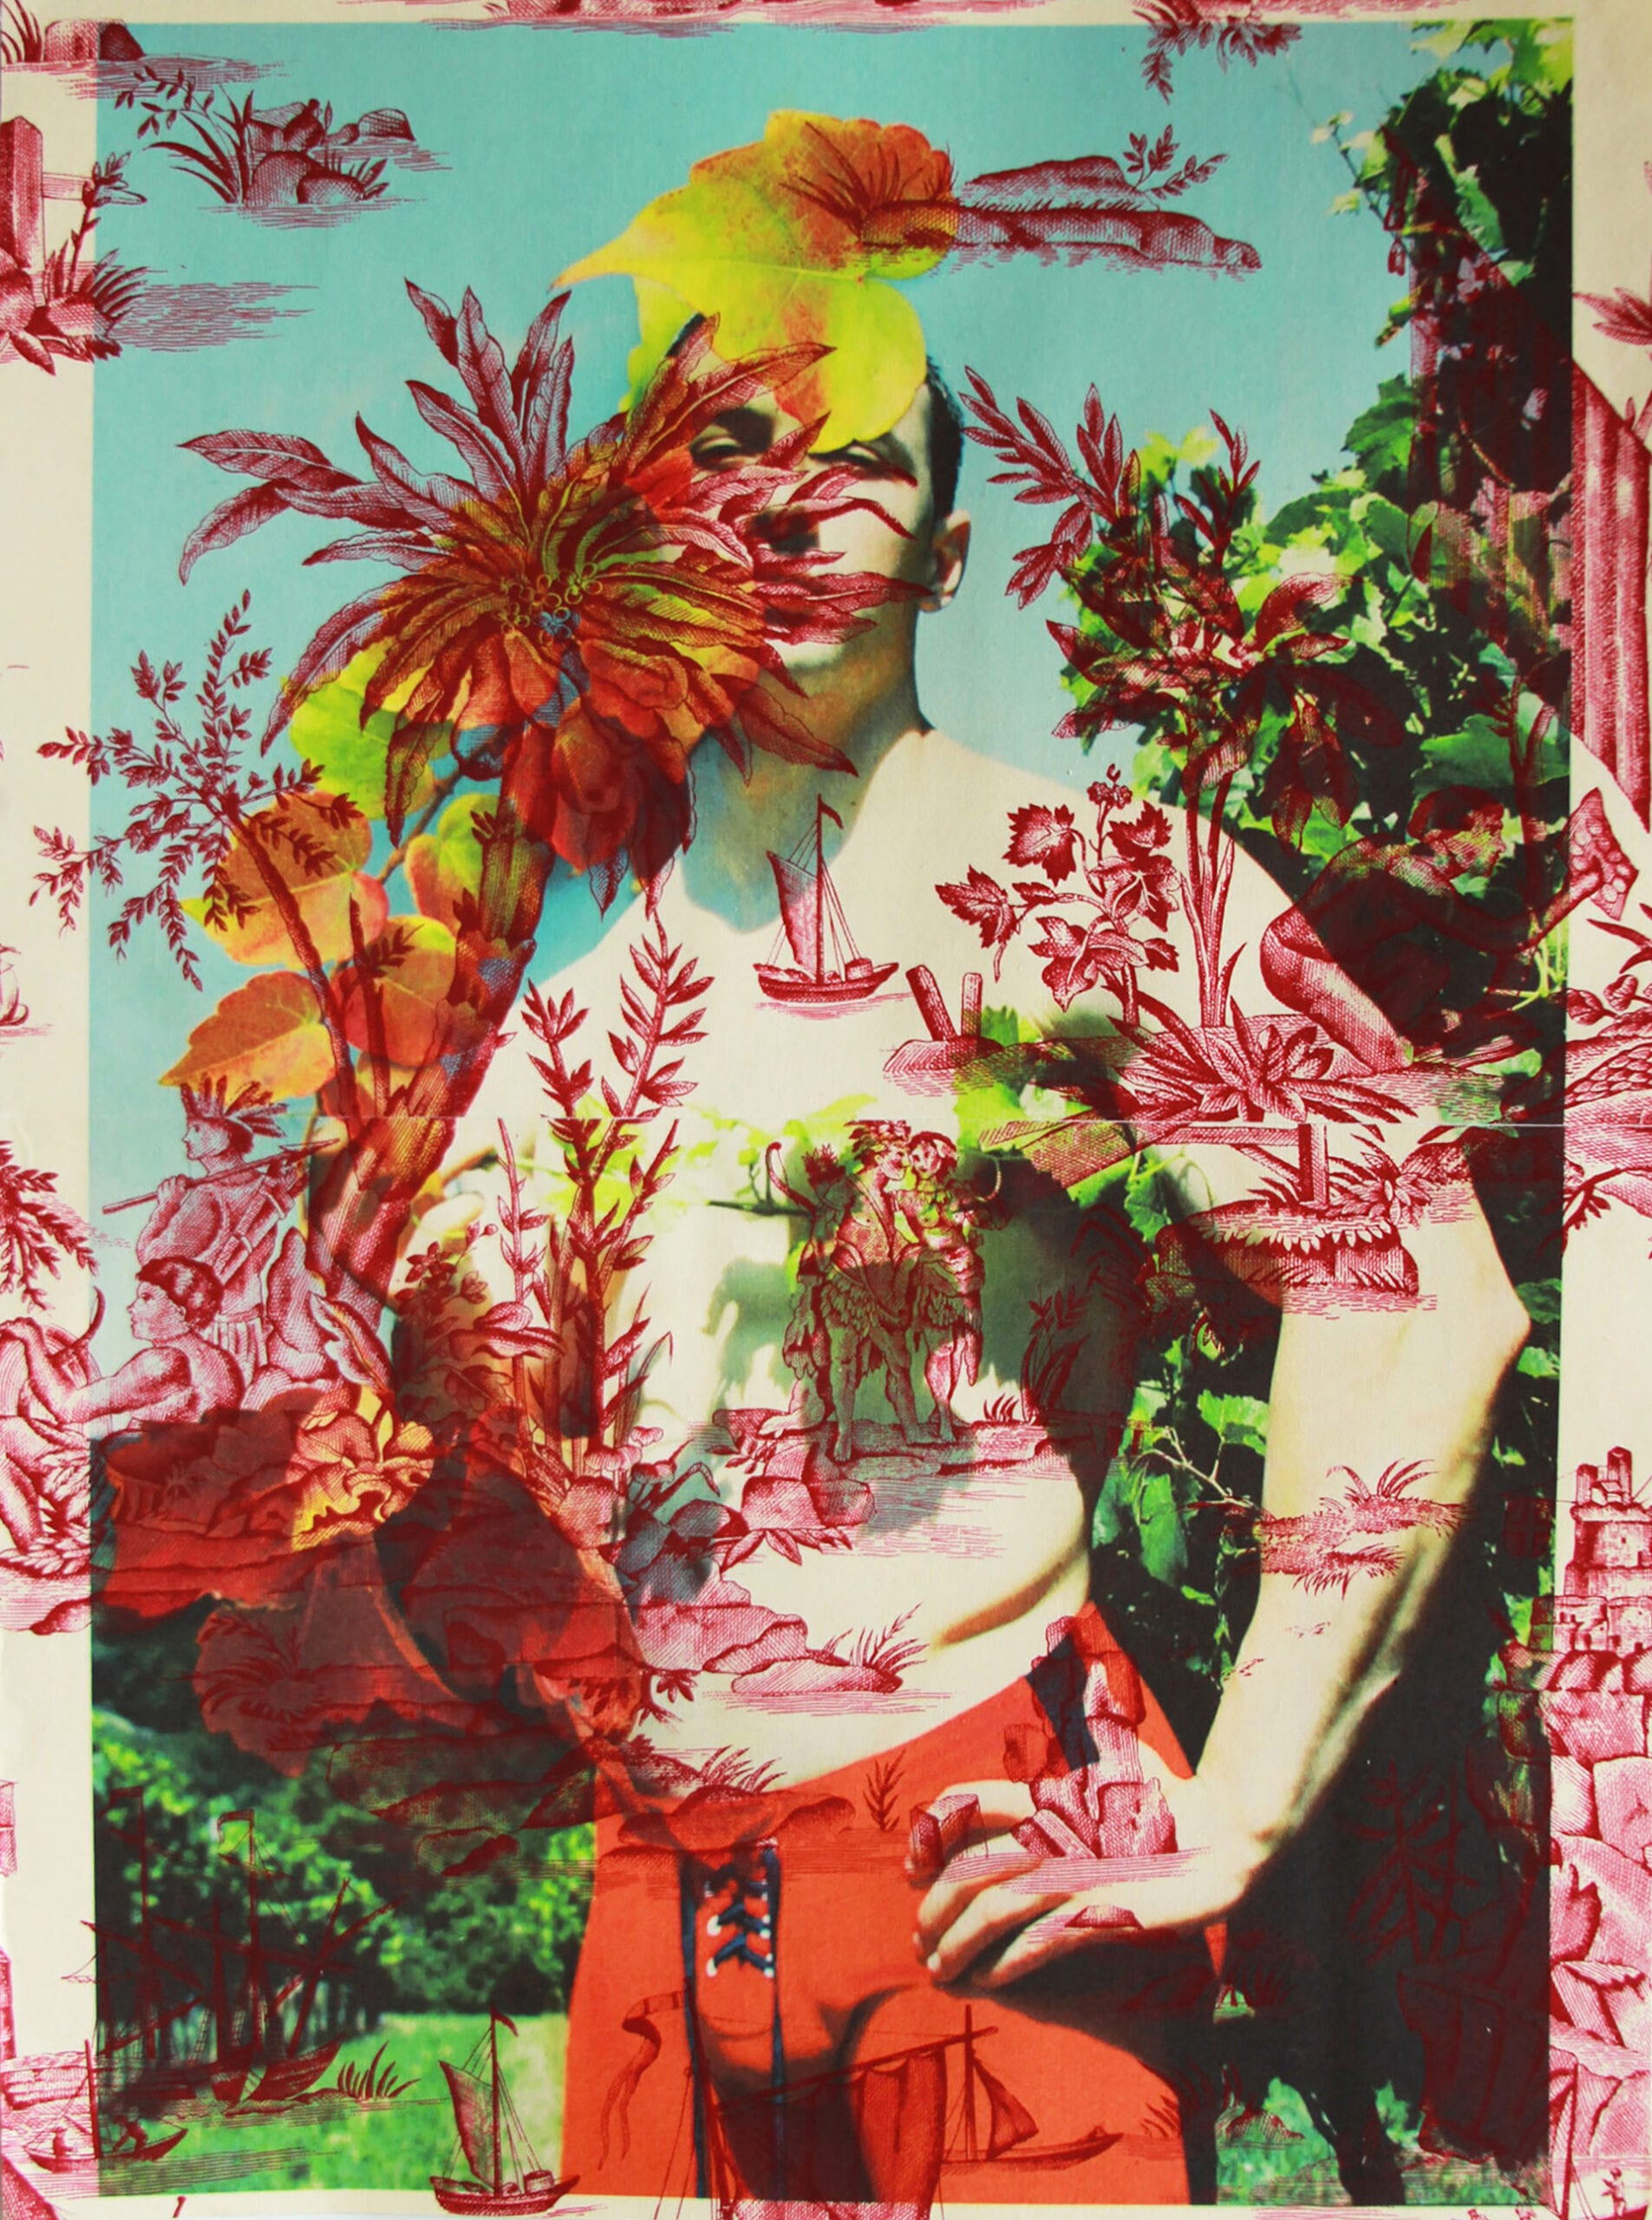 "Tim Hailand, Dan Vineyard Vienna re-photographed Berlin (on Red Indian toile), digital pigment print on patterned toile de Jouy fabric, 25"" x 19"", unique print, 2012"